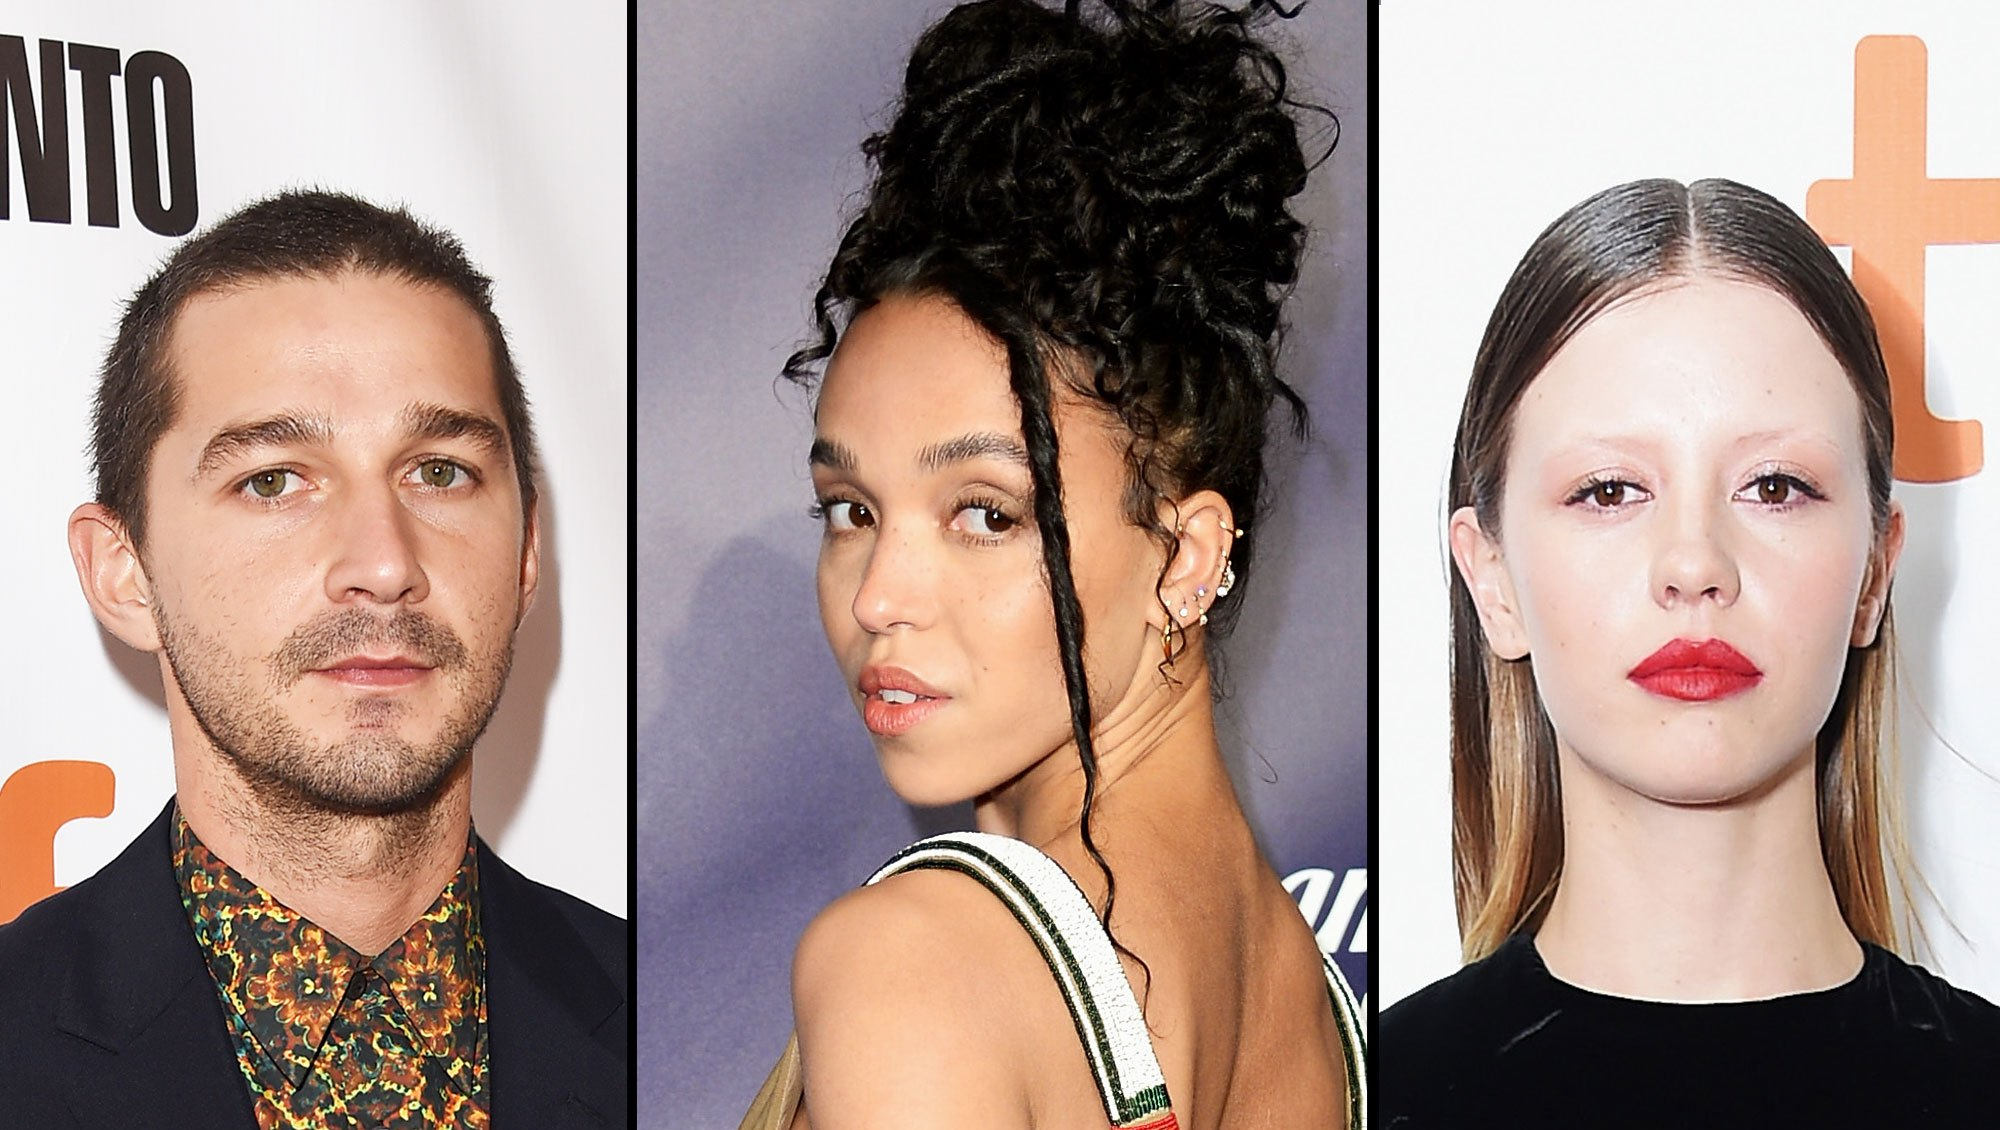 Shia LeBeouf, FKA Twigs and Mia Goth